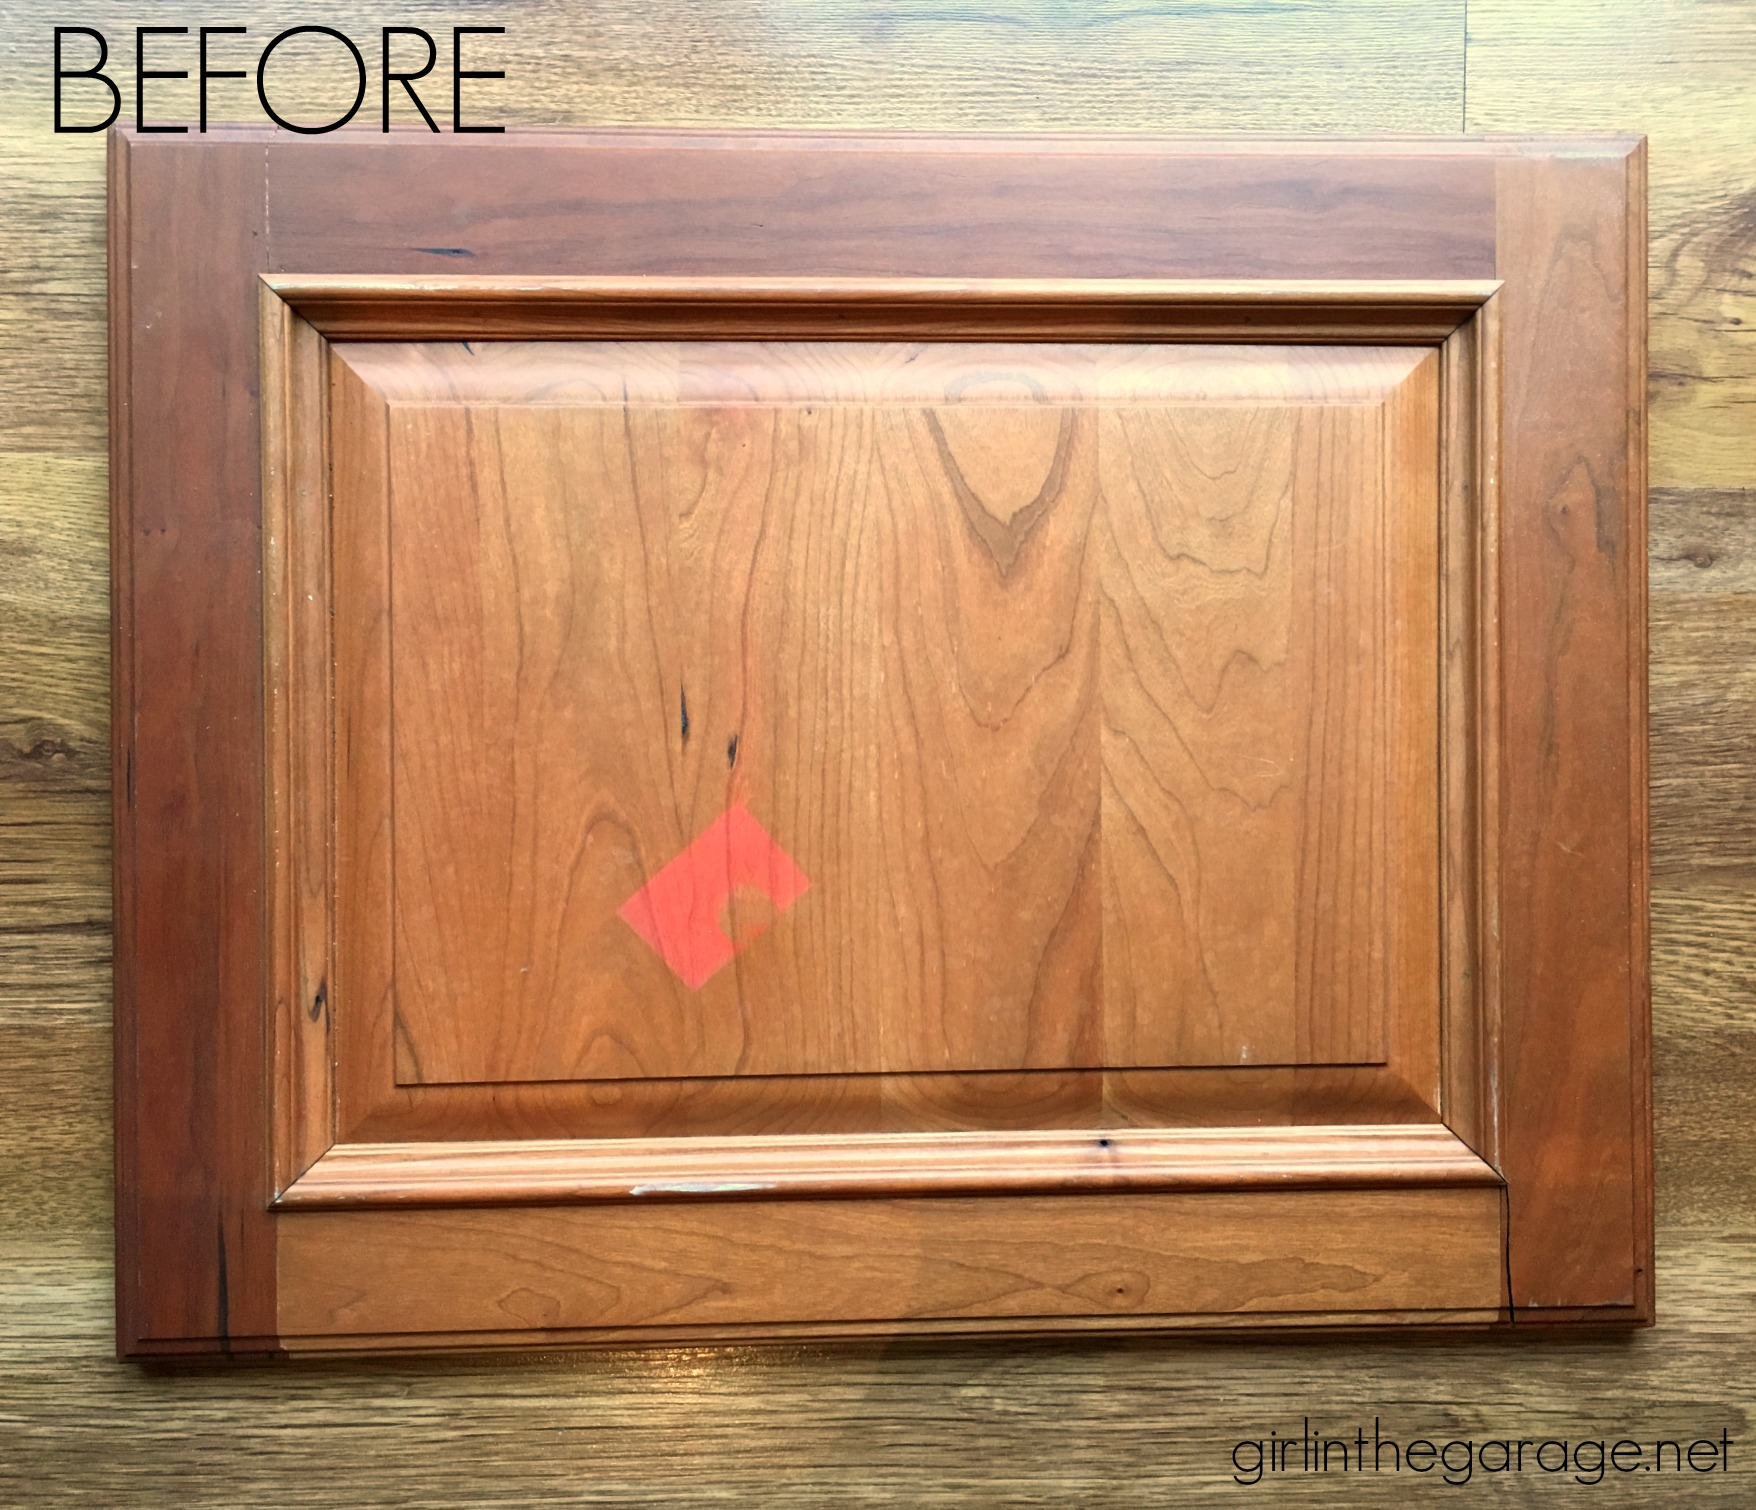 Repurposed Cabinet Door To Chic Wall Decor Girl In The